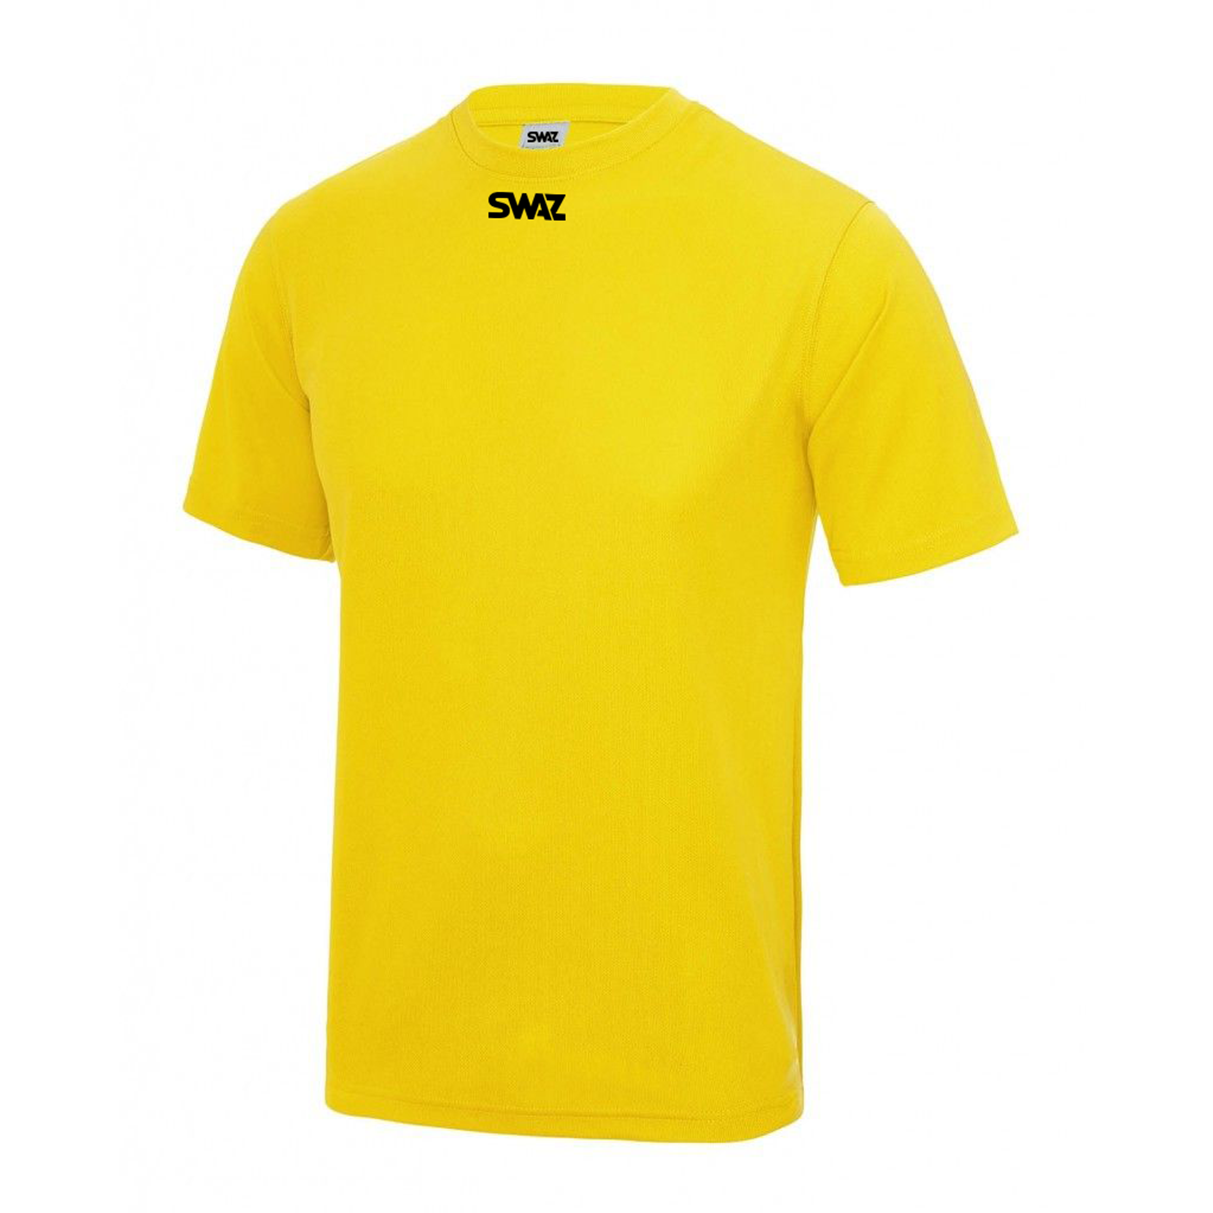 SWAZ Club Training T-Shirt – Yellow